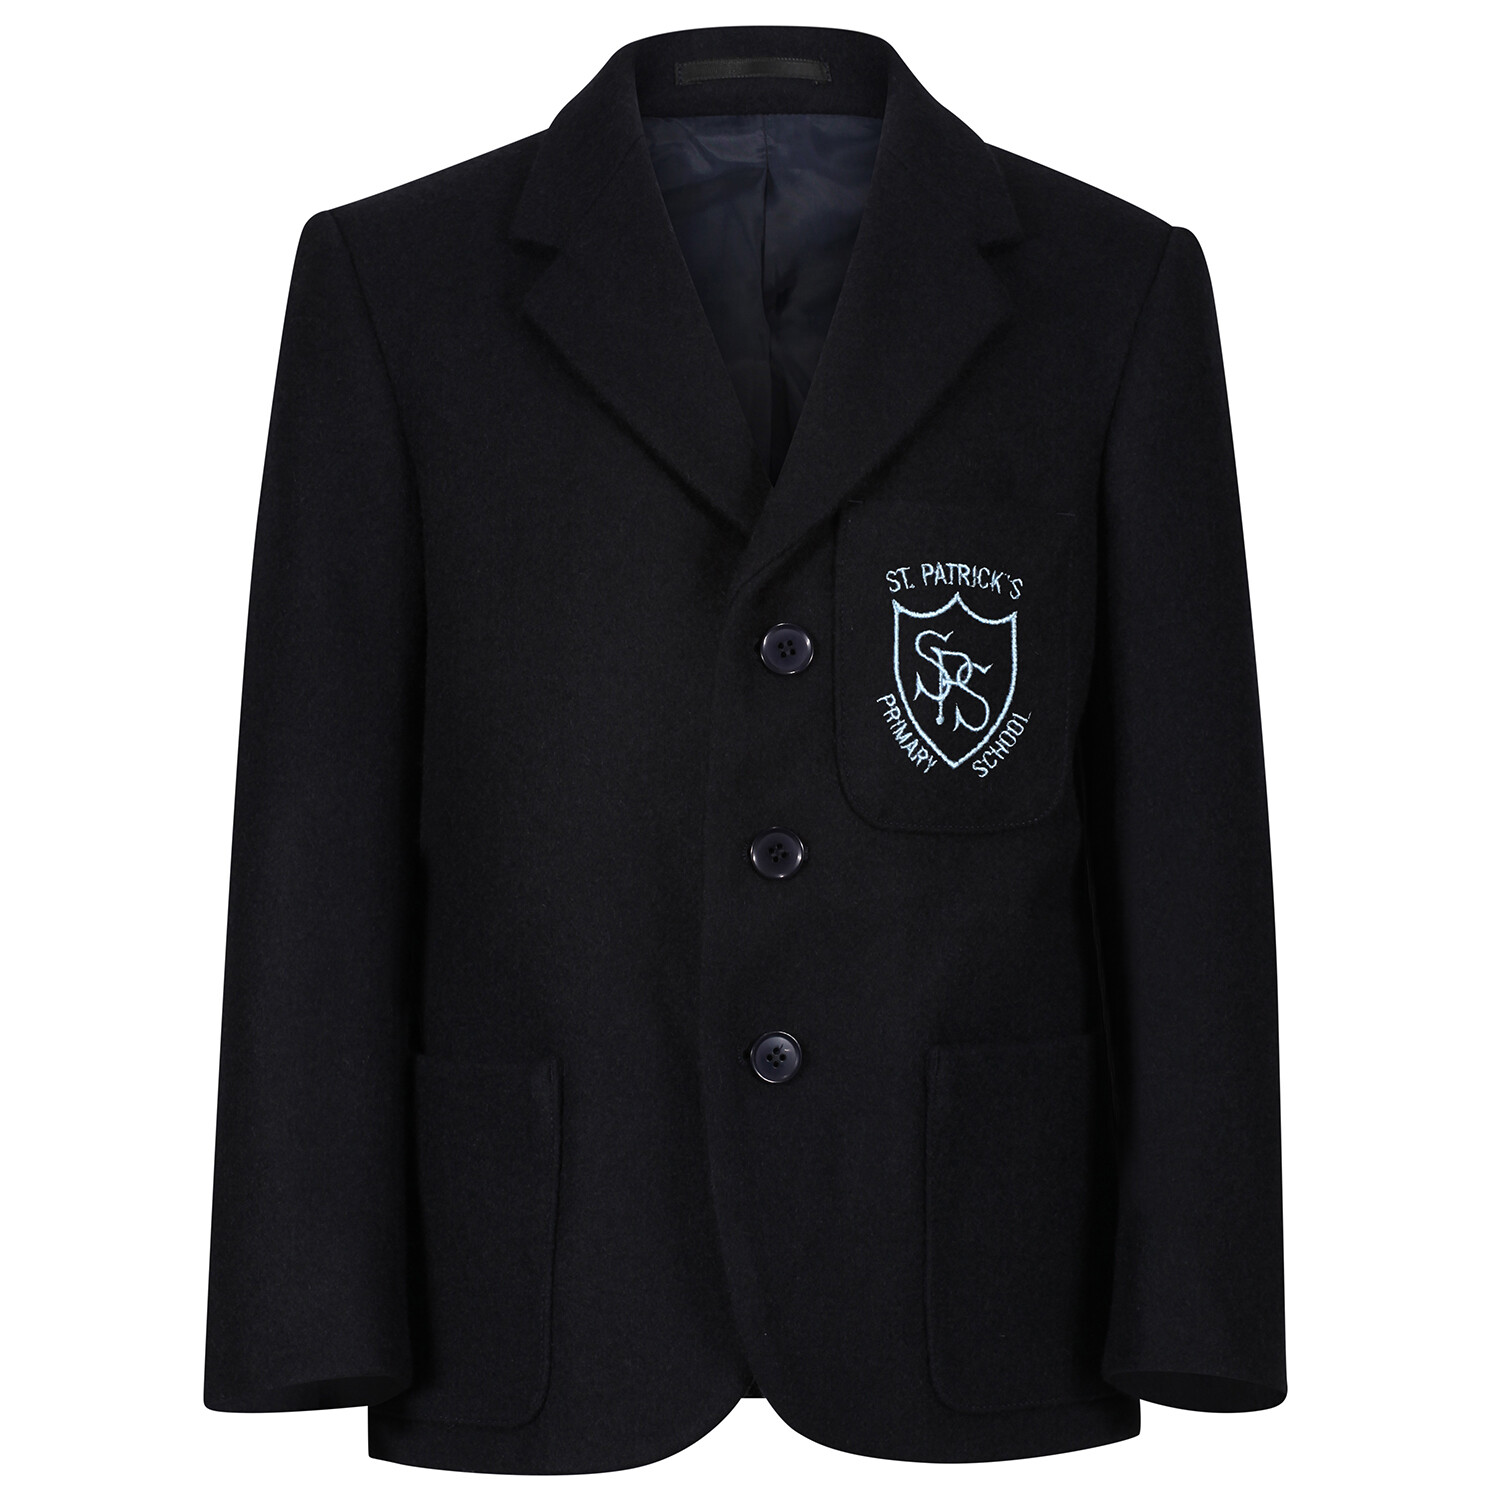 St Patrick's Primary 'Wool' Blazer (Made-to-Order)